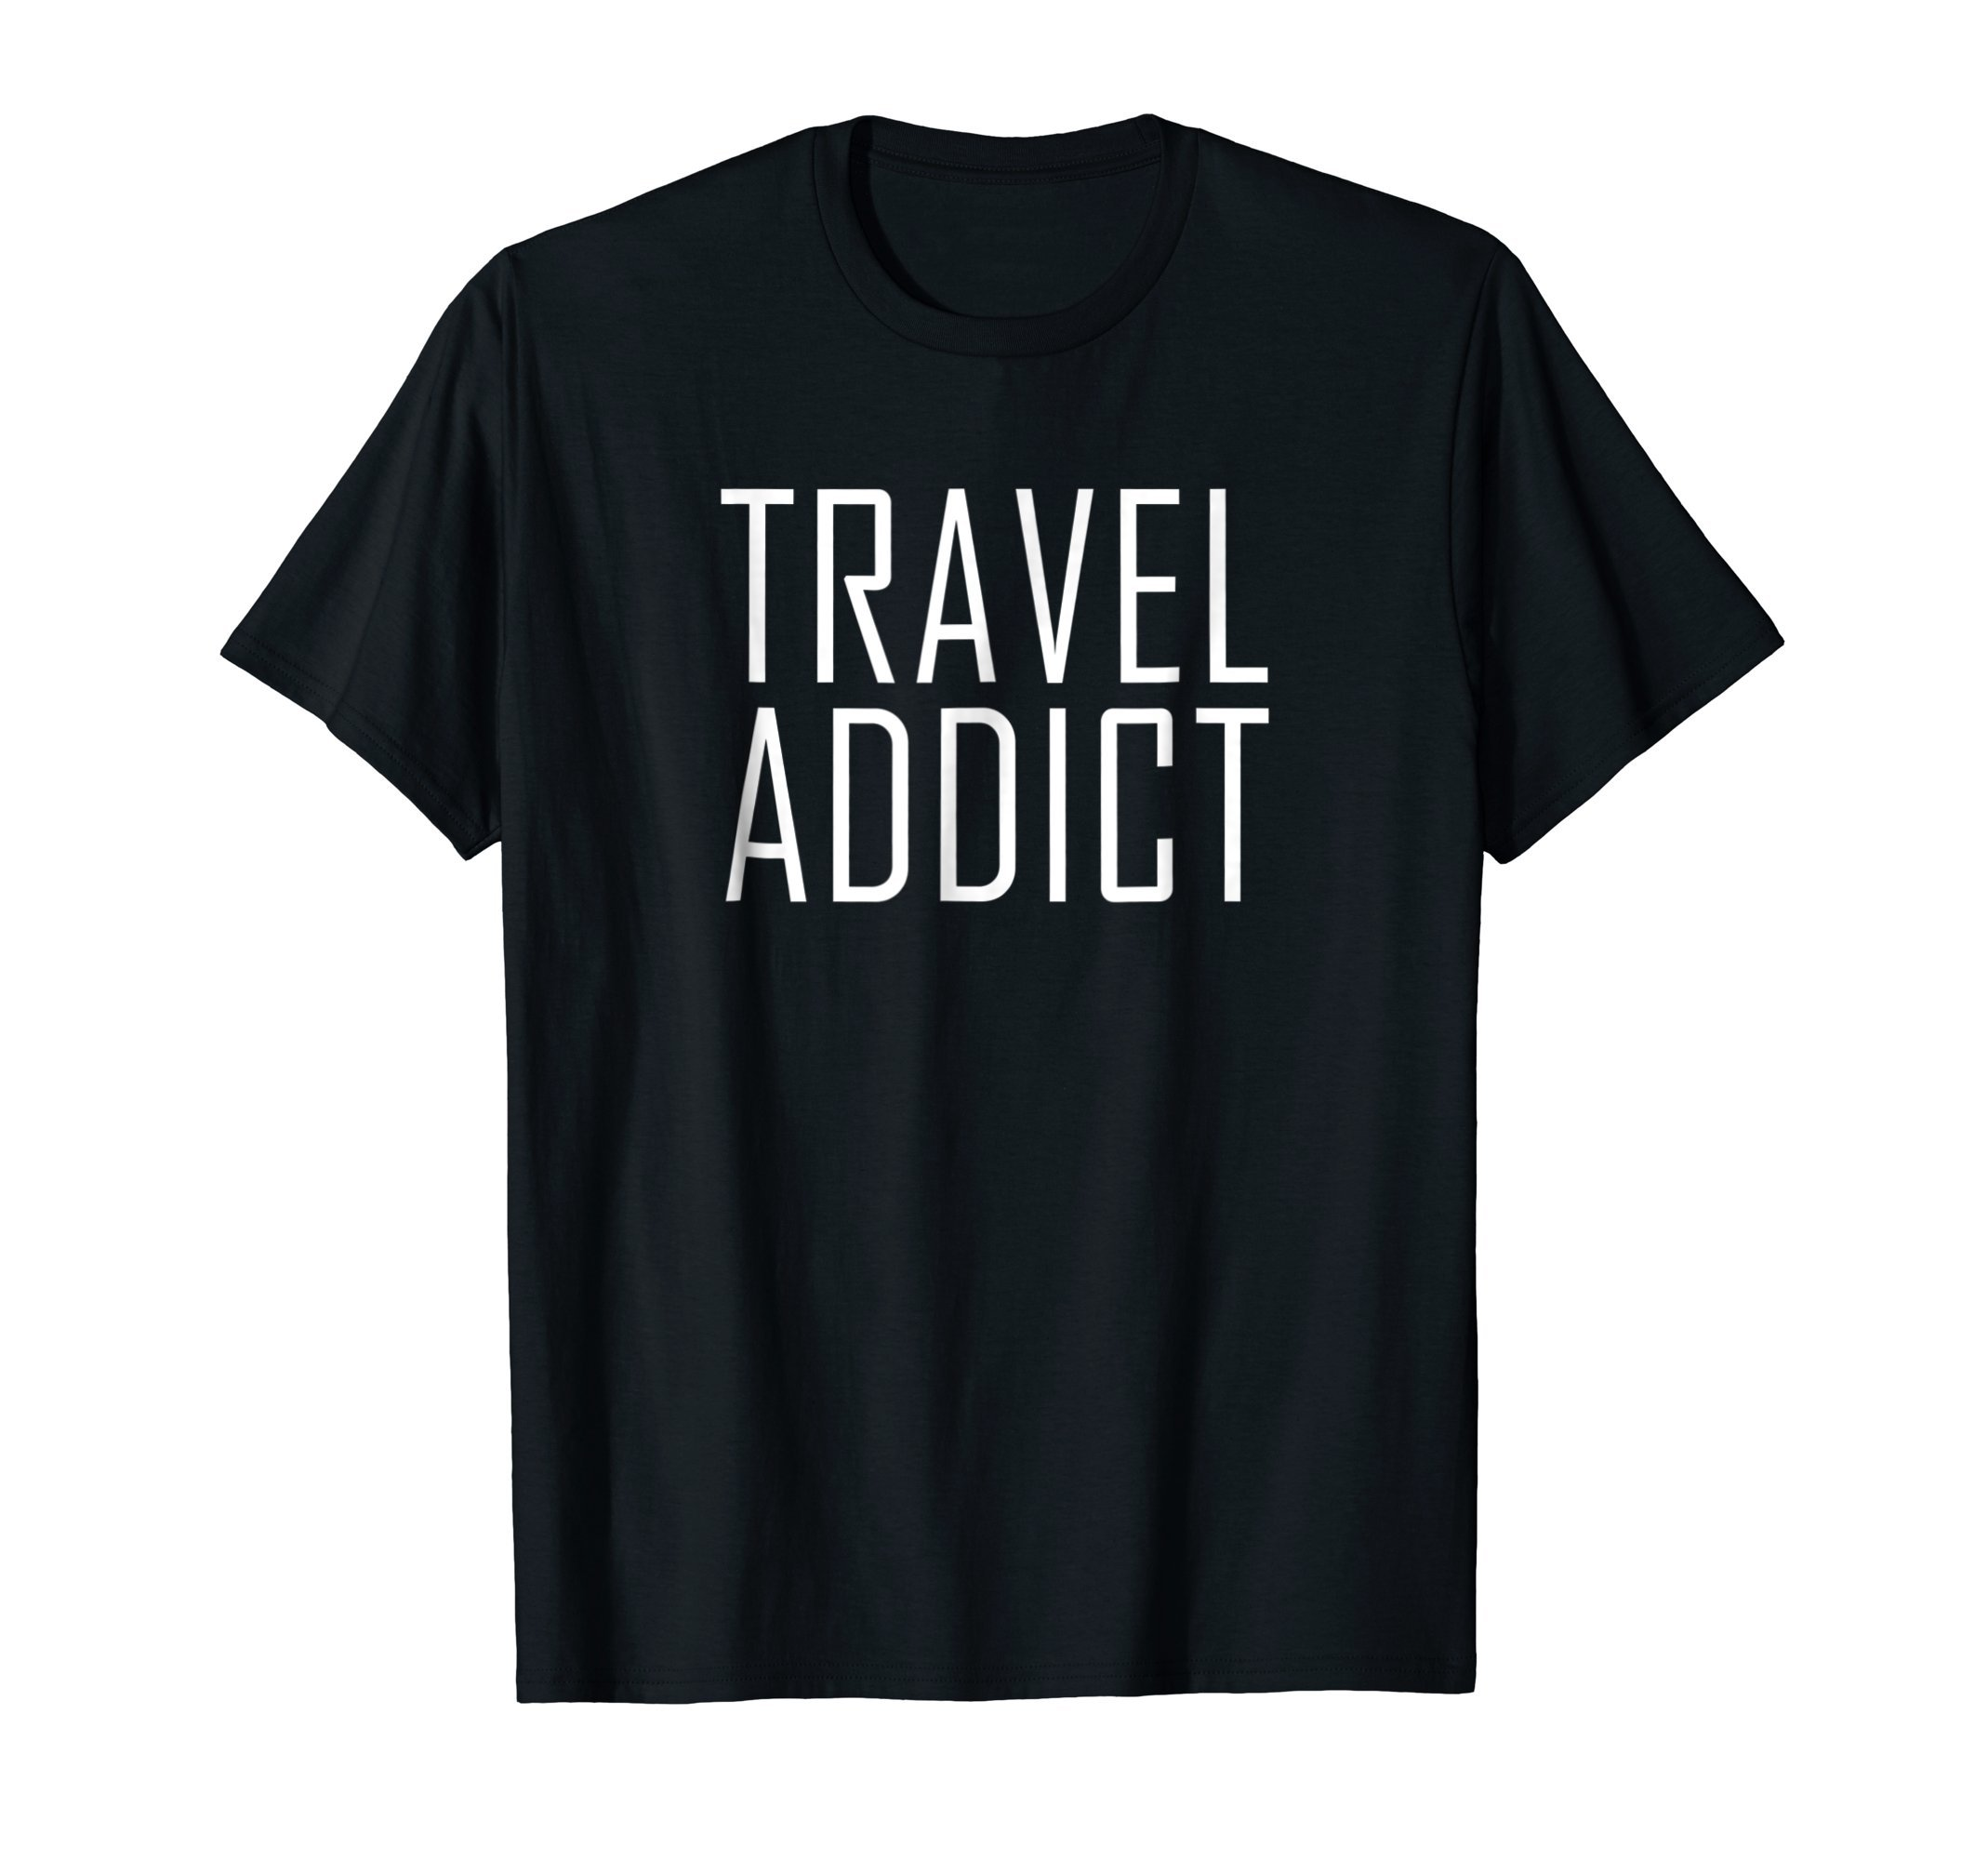 Travel Addict Vacation shirt for travelers